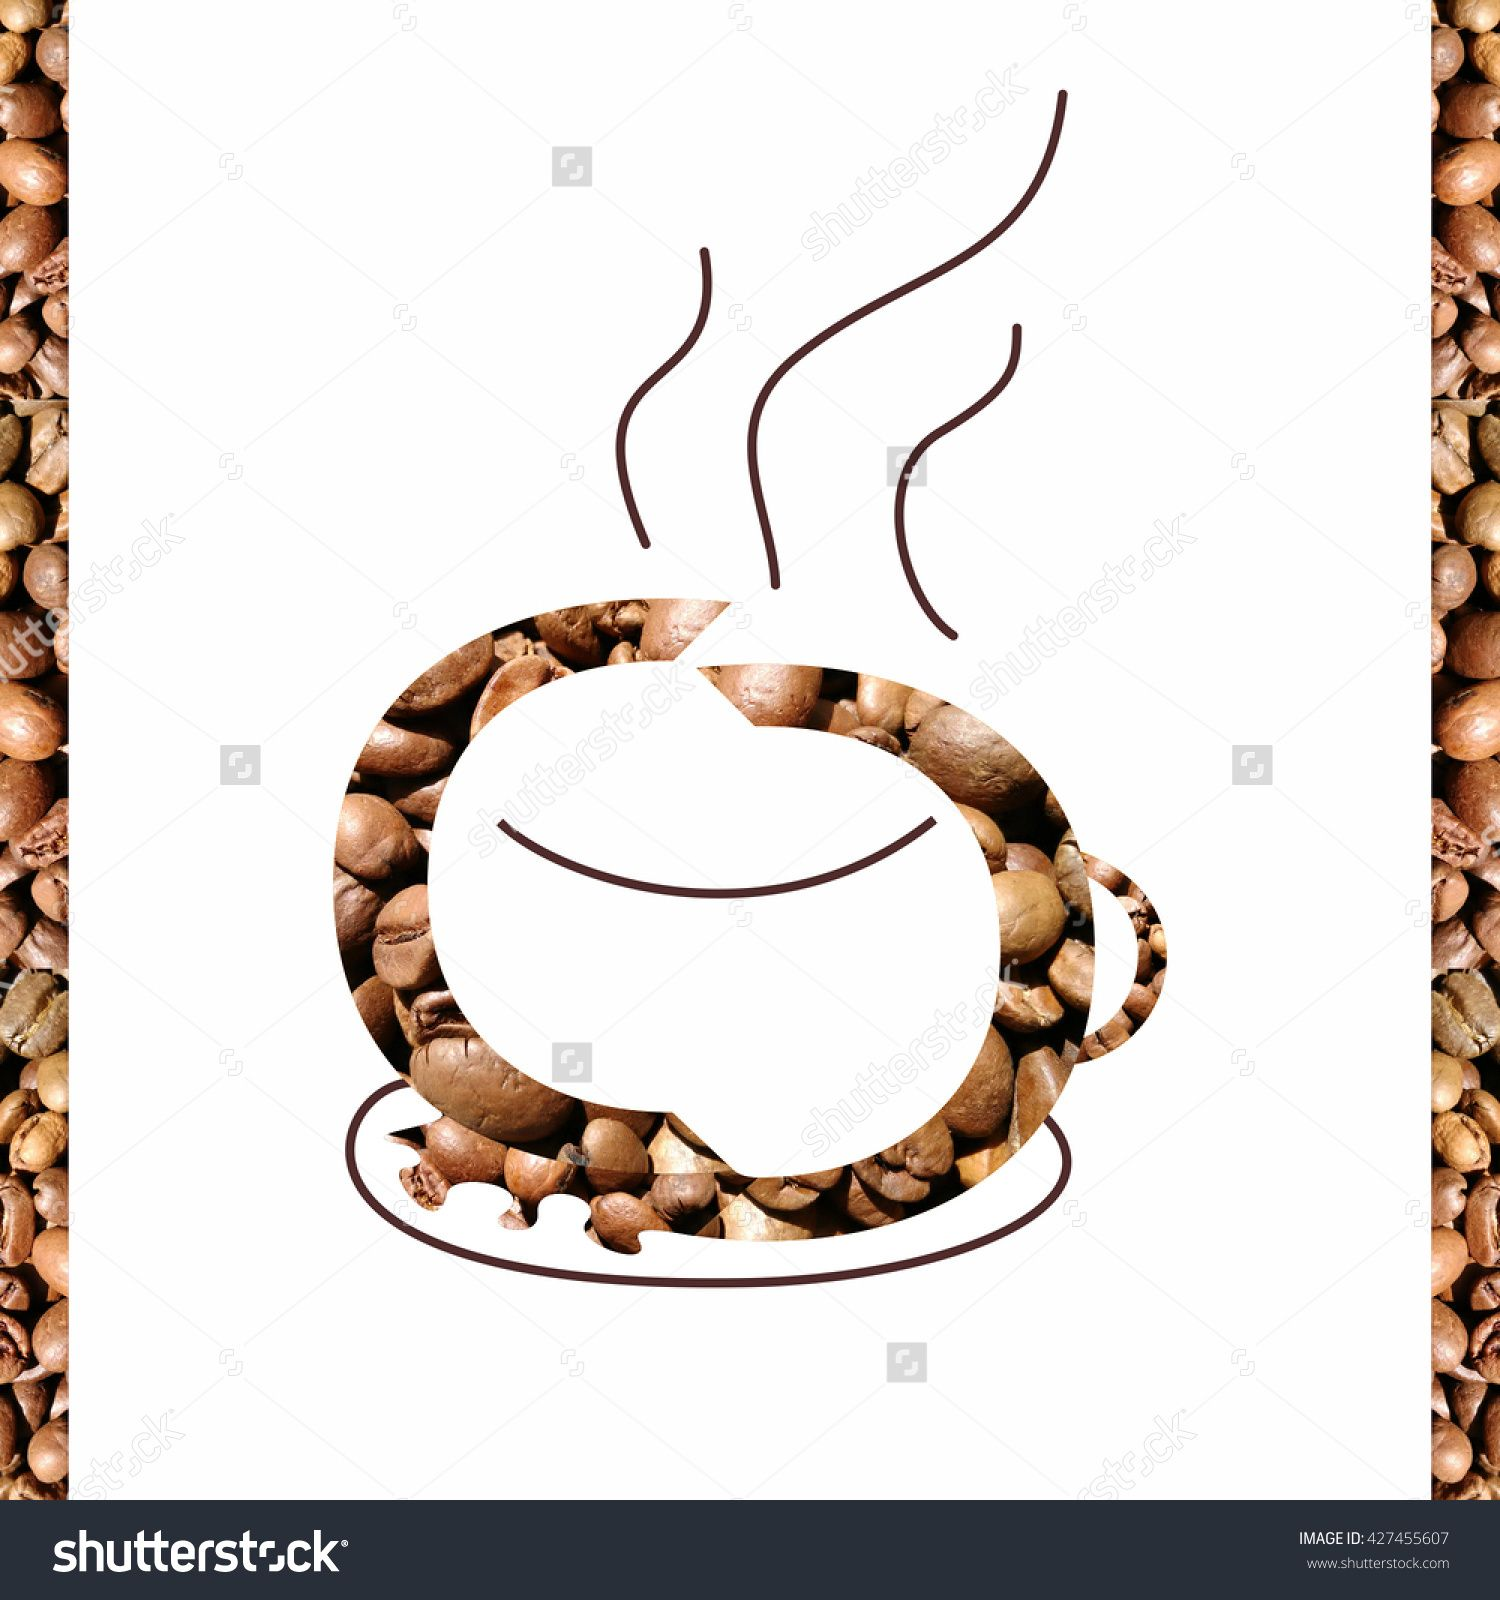 Coffee cup made of two c letters with coffee grains texture coffee cup made of two c letters with coffee grains buy this stock illustration on shutterstock find other images biocorpaavc